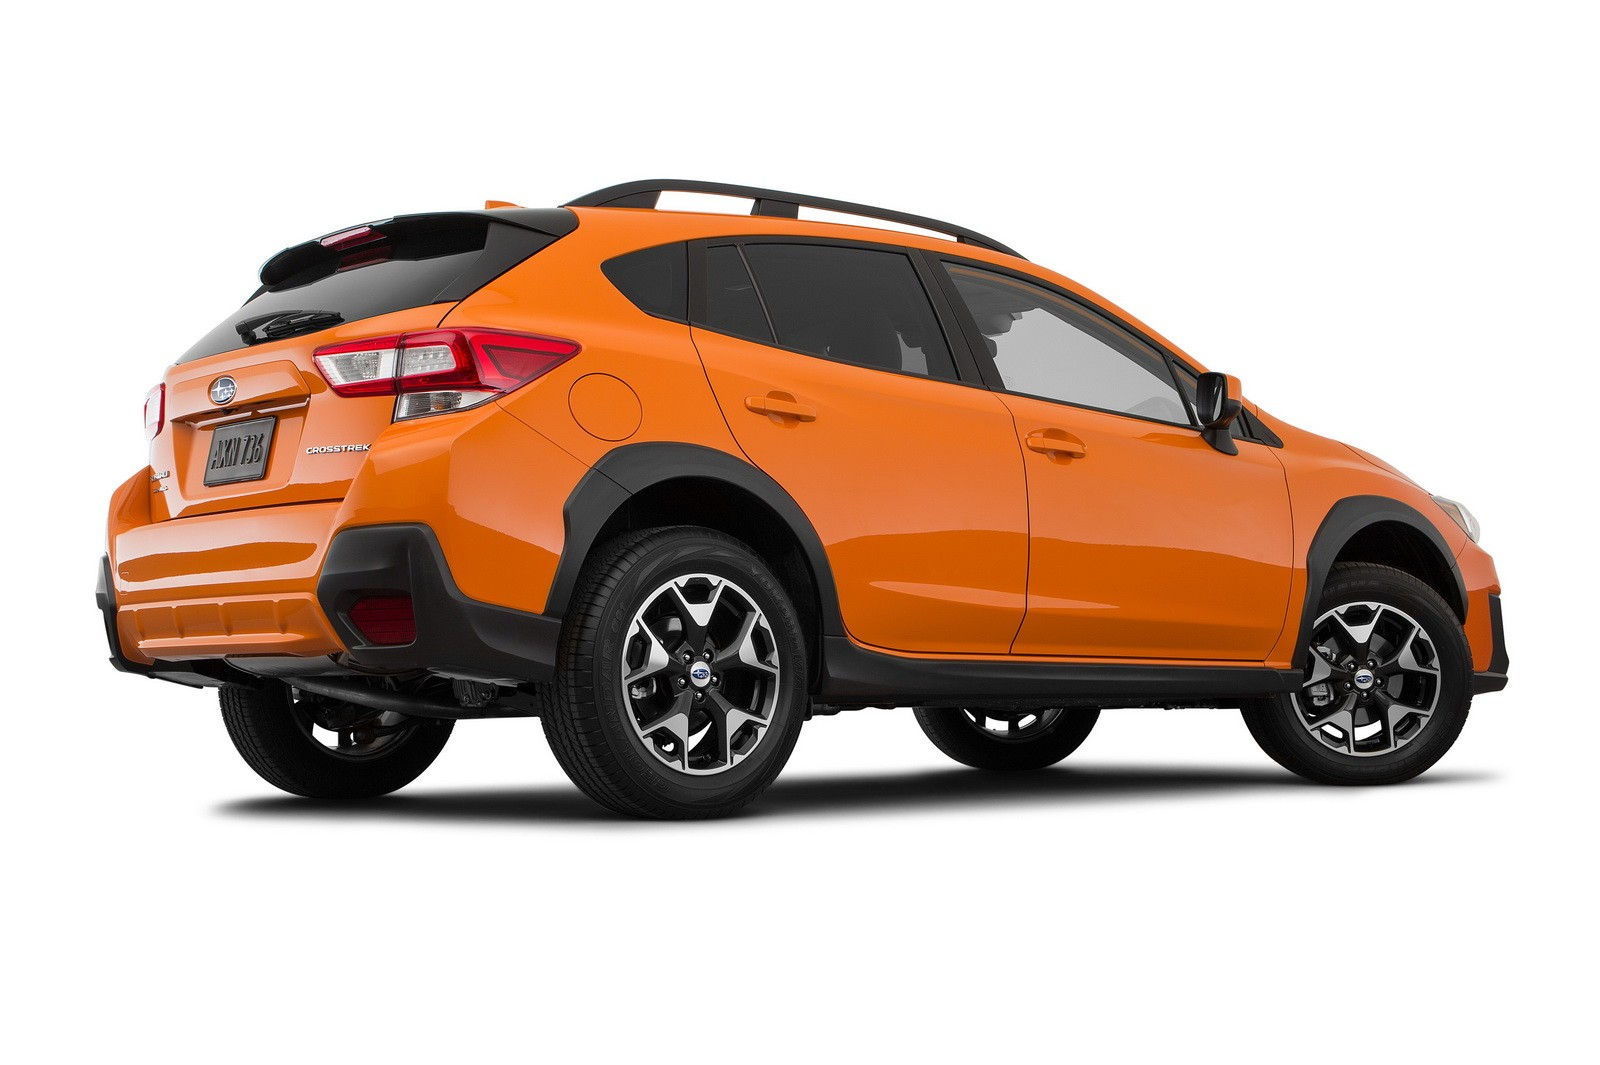 2018 subaru crosstrek is much more refined says consumer reports review autoevolution. Black Bedroom Furniture Sets. Home Design Ideas